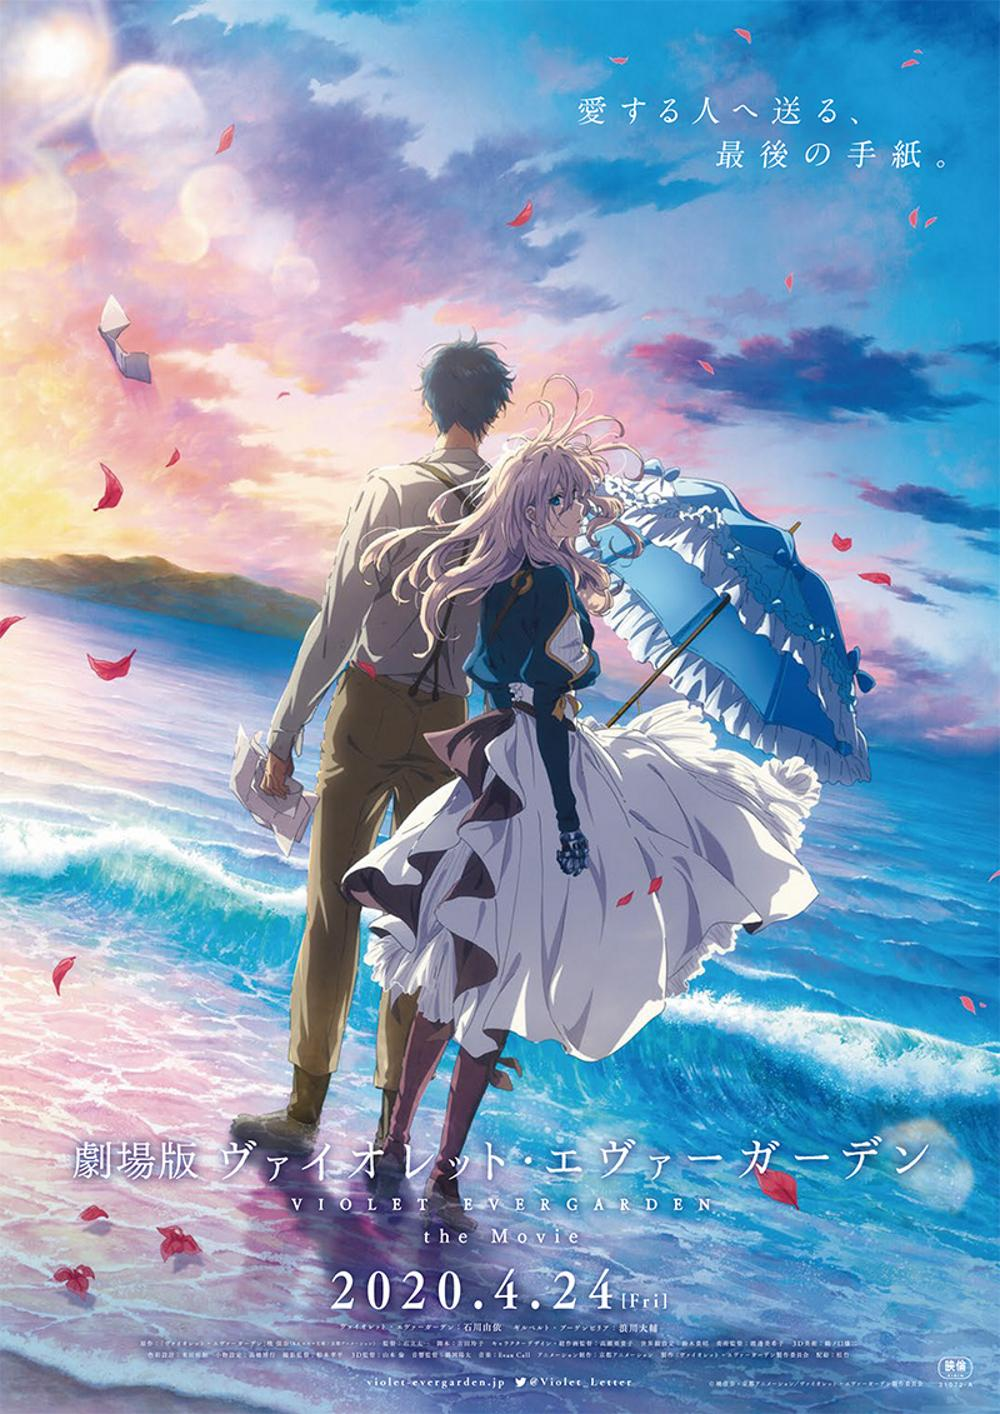 Violet Evergarden: The Movie